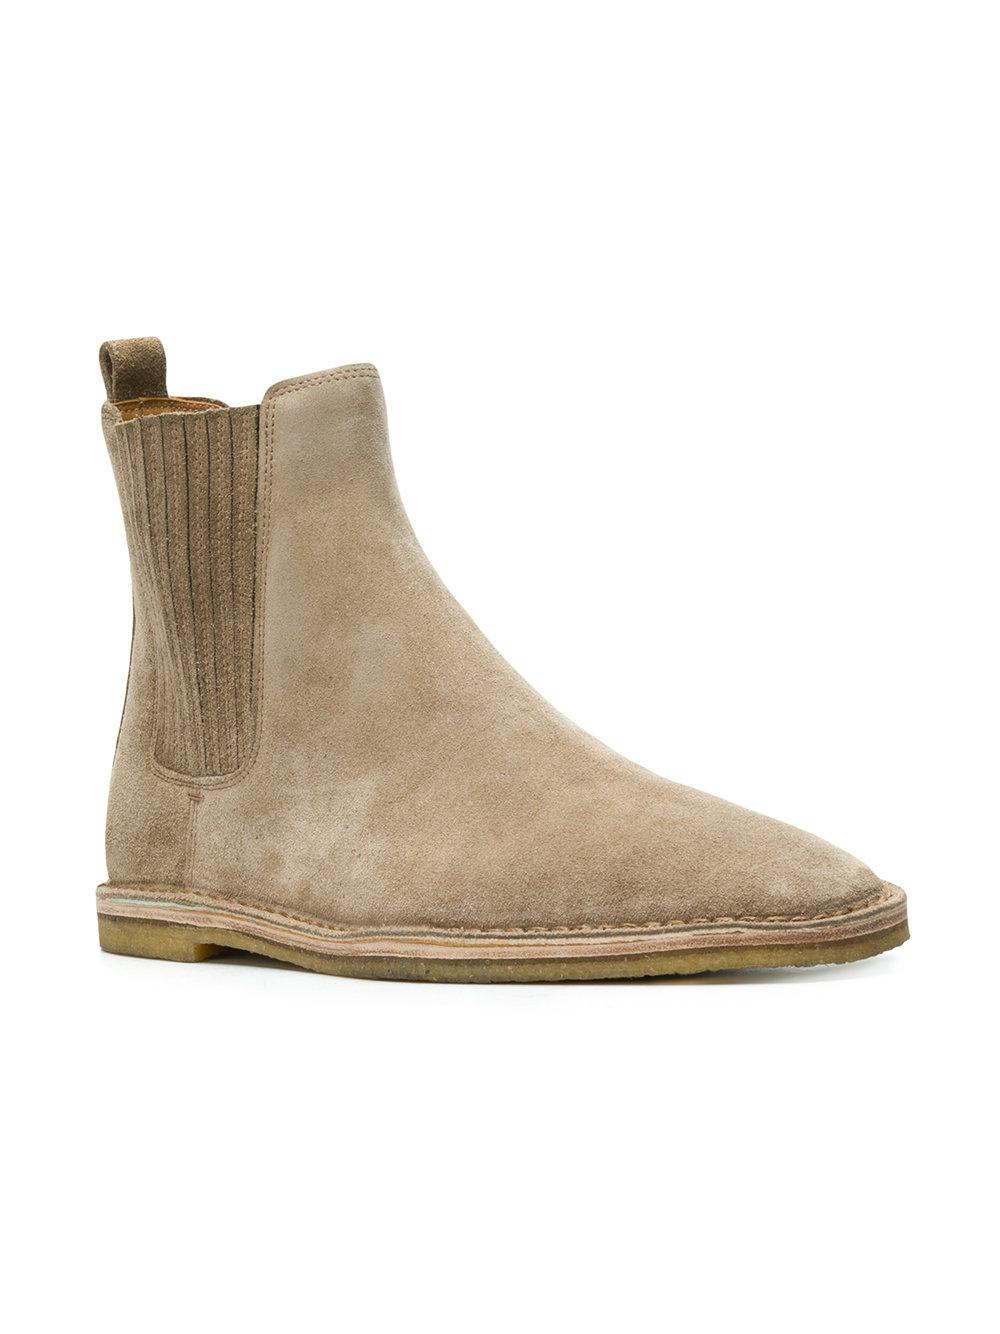 0bcbc84ee92 Saint Laurent Nino Chelsea Boots in Natural for Men - Lyst